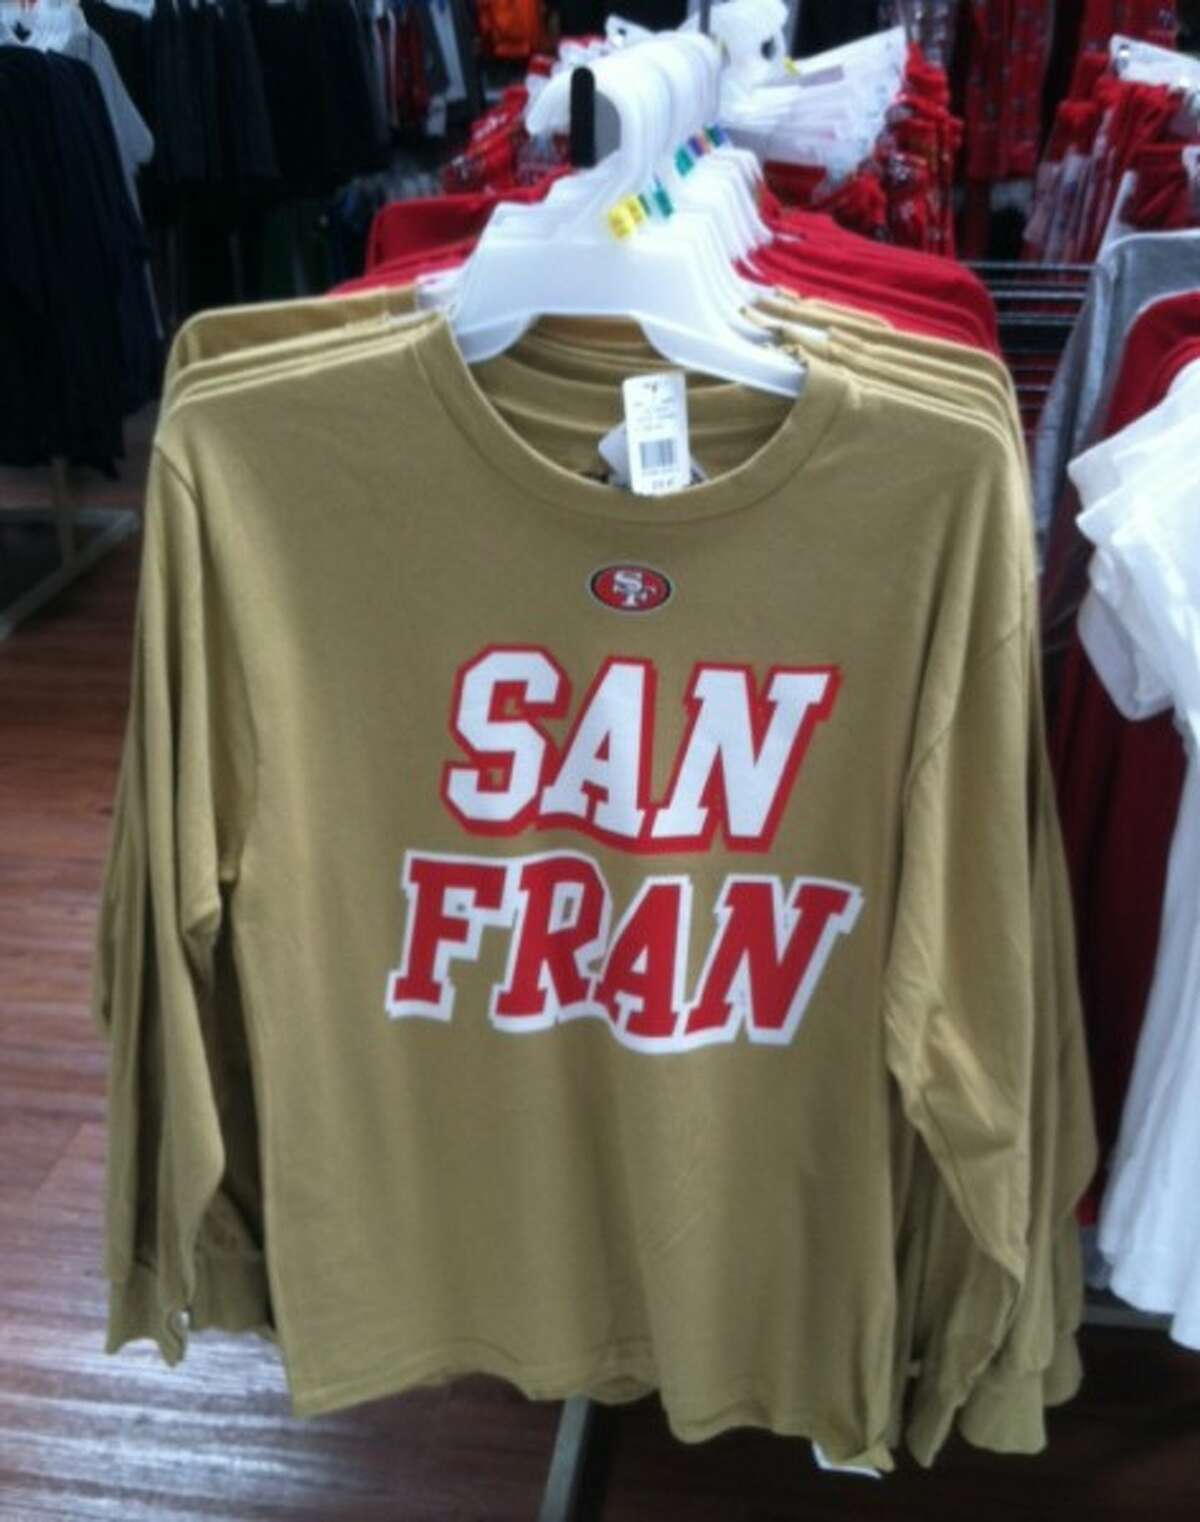 """""""San Fran."""" Despite this 49ers shirt, no self-respecting San Franciscan would utter that phrase. It got us thinking, what else would you never catch a San Francisco resident saying?"""